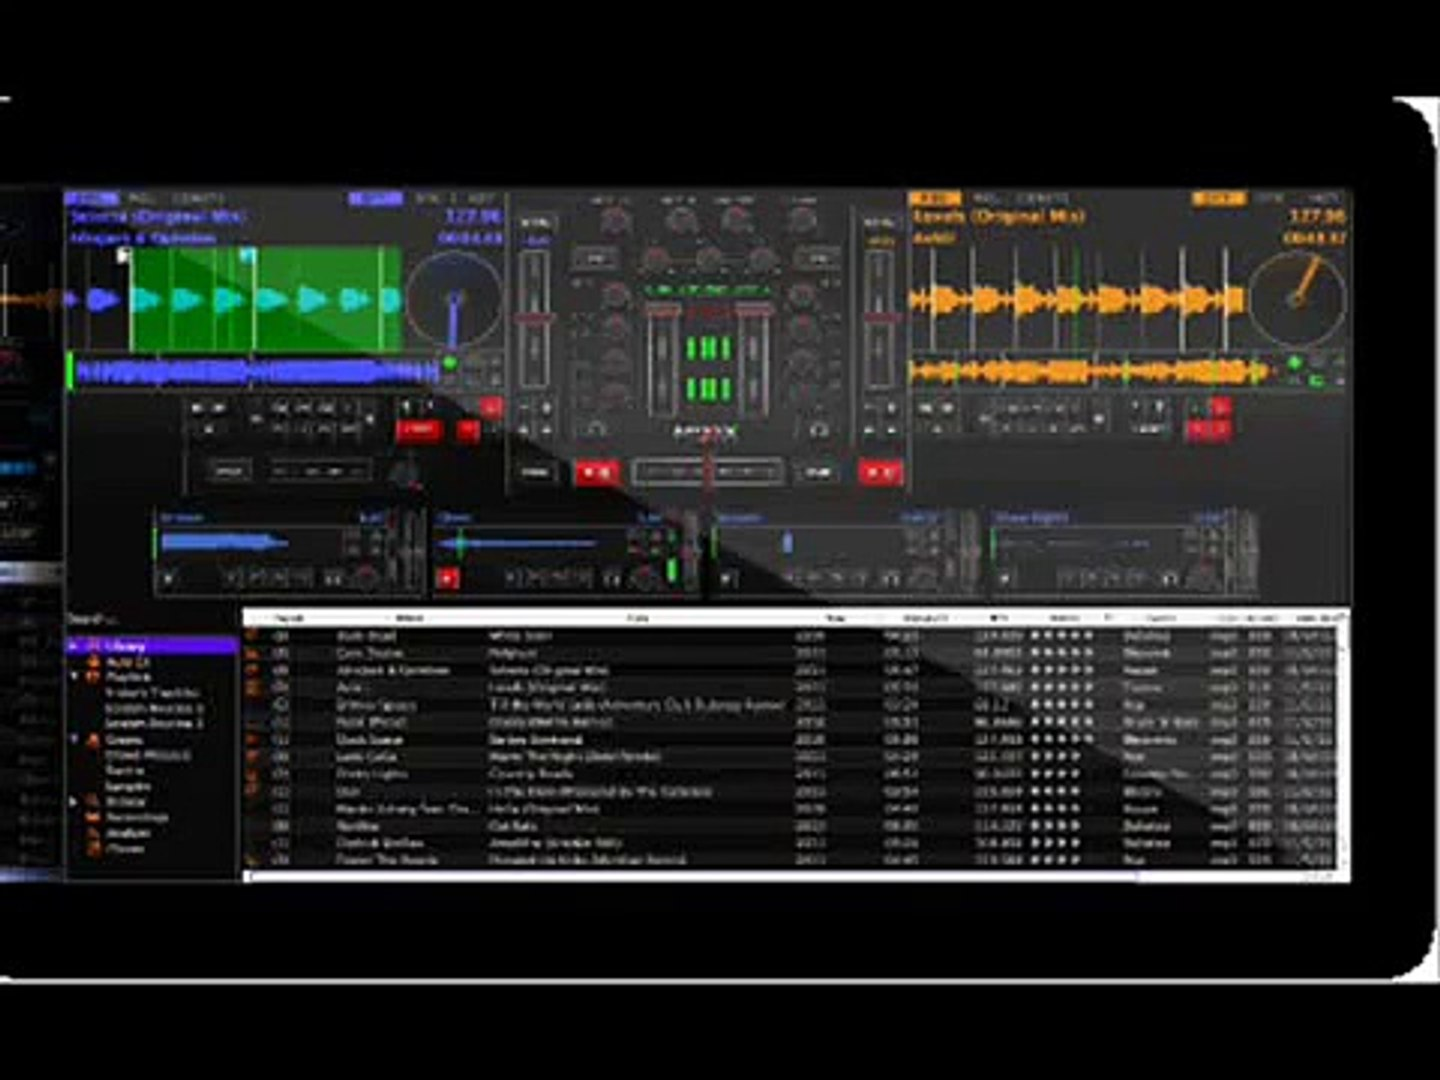 Virtual DJ Mixing Software 2013 How To Make a Mix on Virtual DJ Software